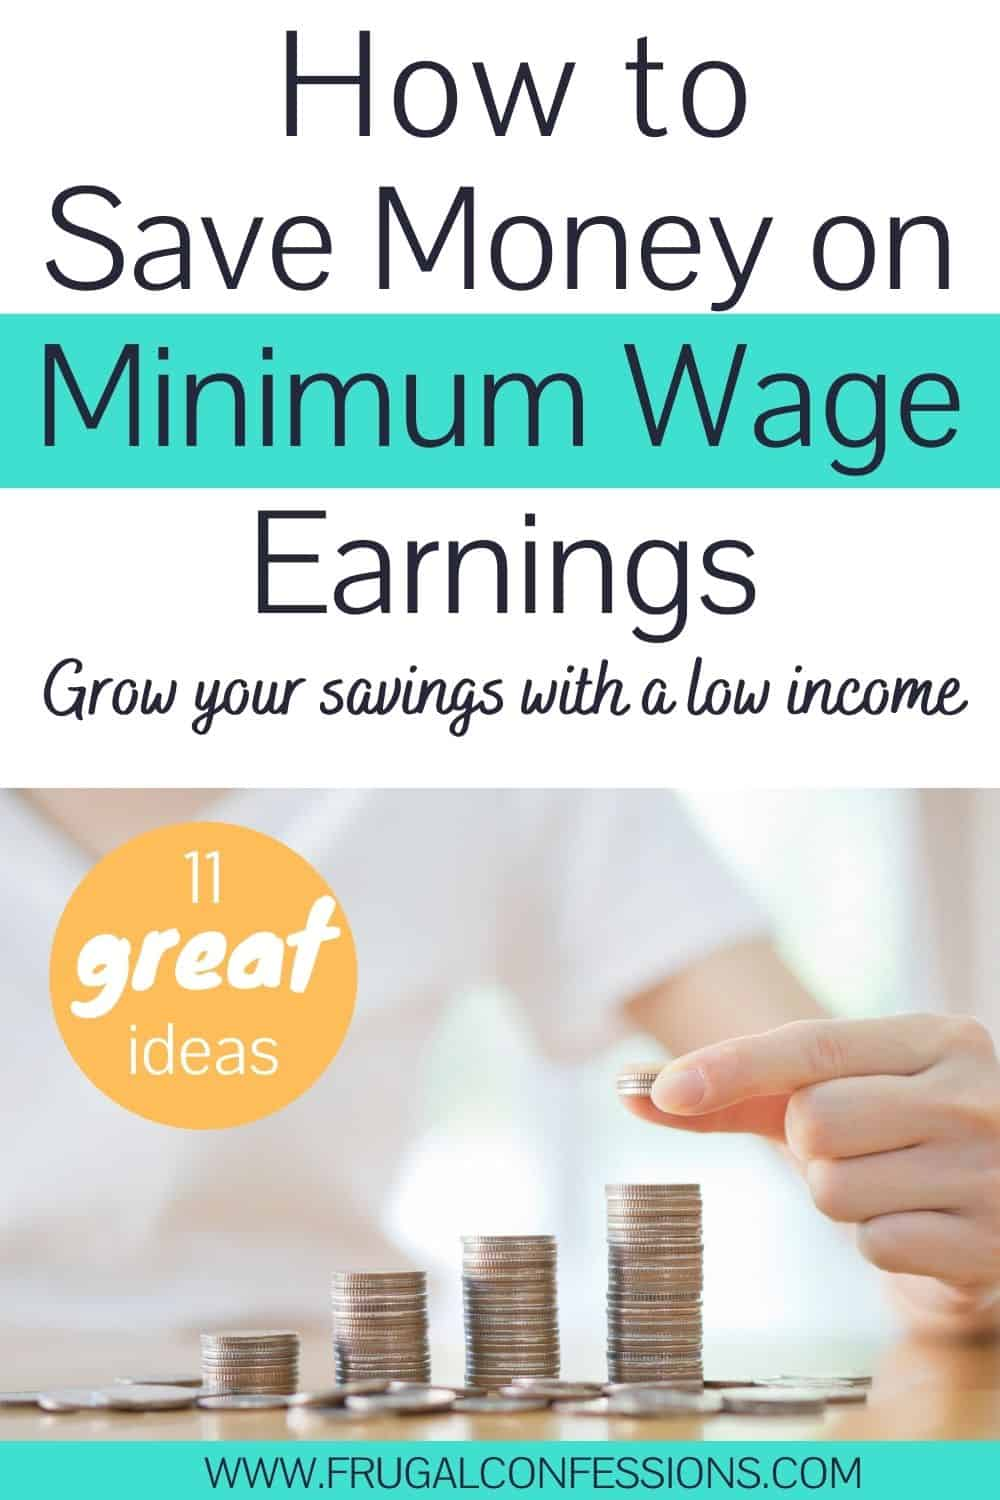 """woman's hand counting coins in little towers, text overlay """"how to save money on minimum wage earnings - 11 great ideas"""""""